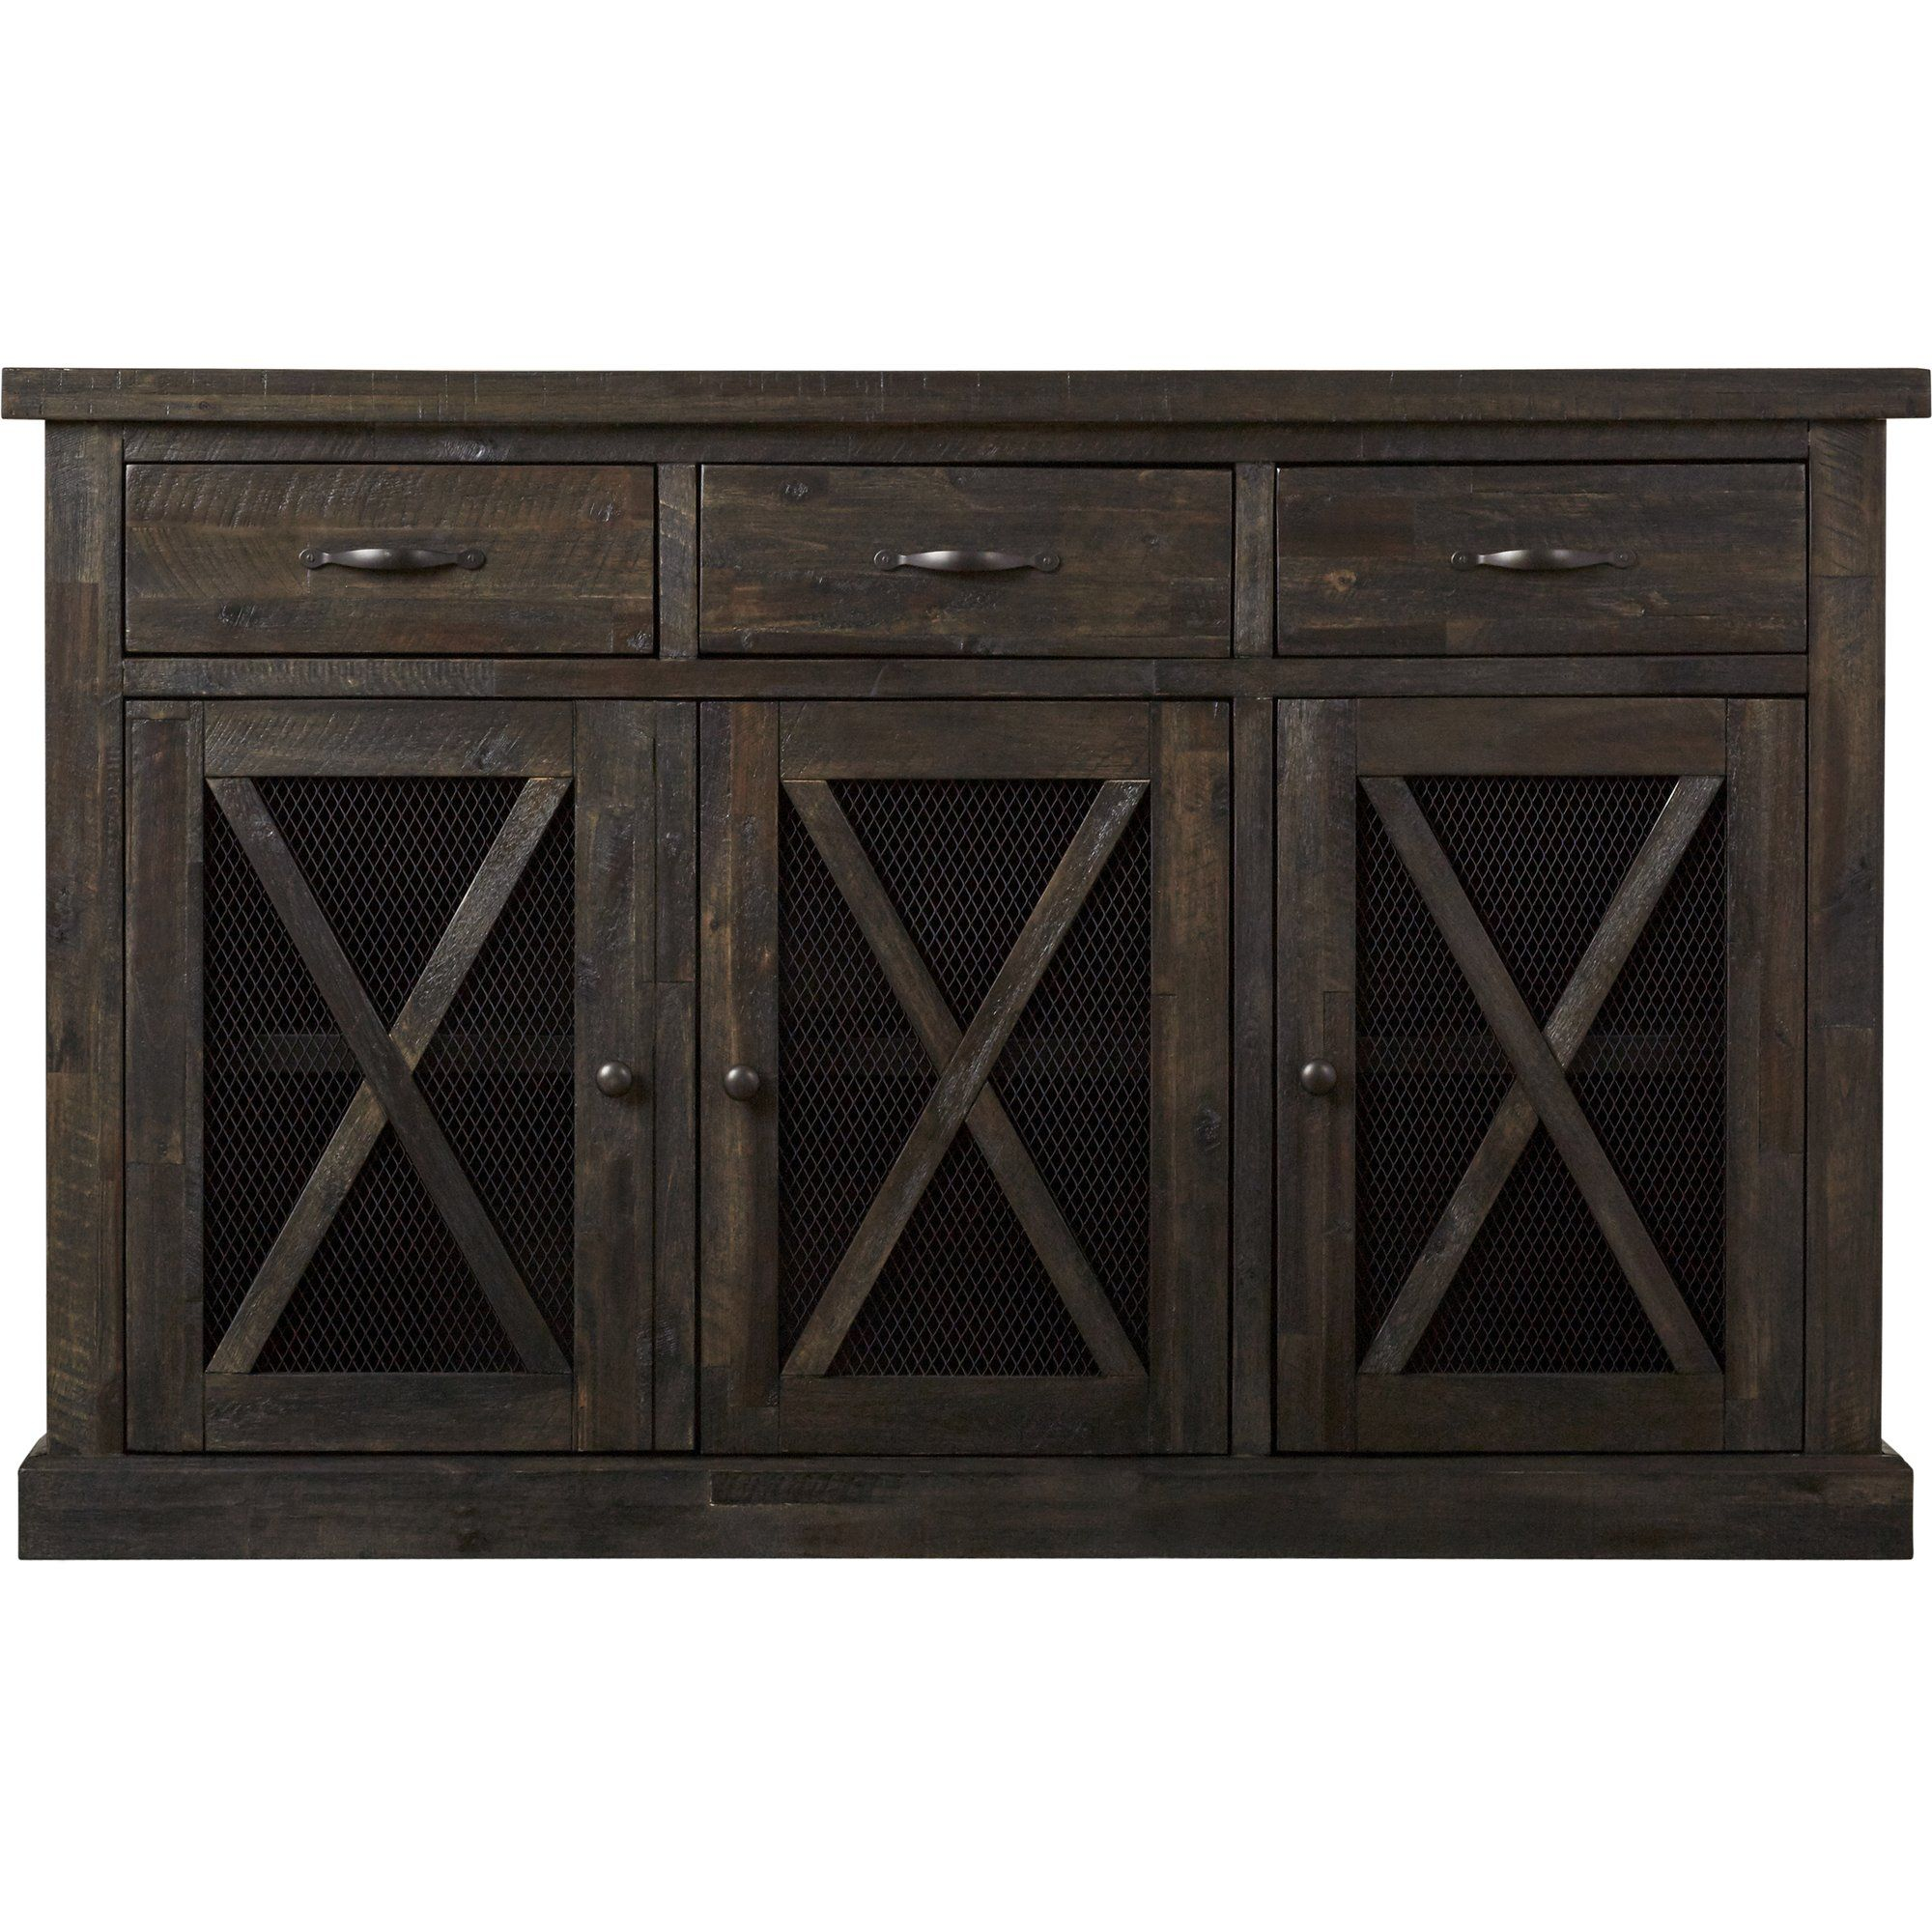 Colborne Sideboard | Home Sweet Home | Sideboard, Furniture Throughout Colborne Sideboards (View 12 of 30)